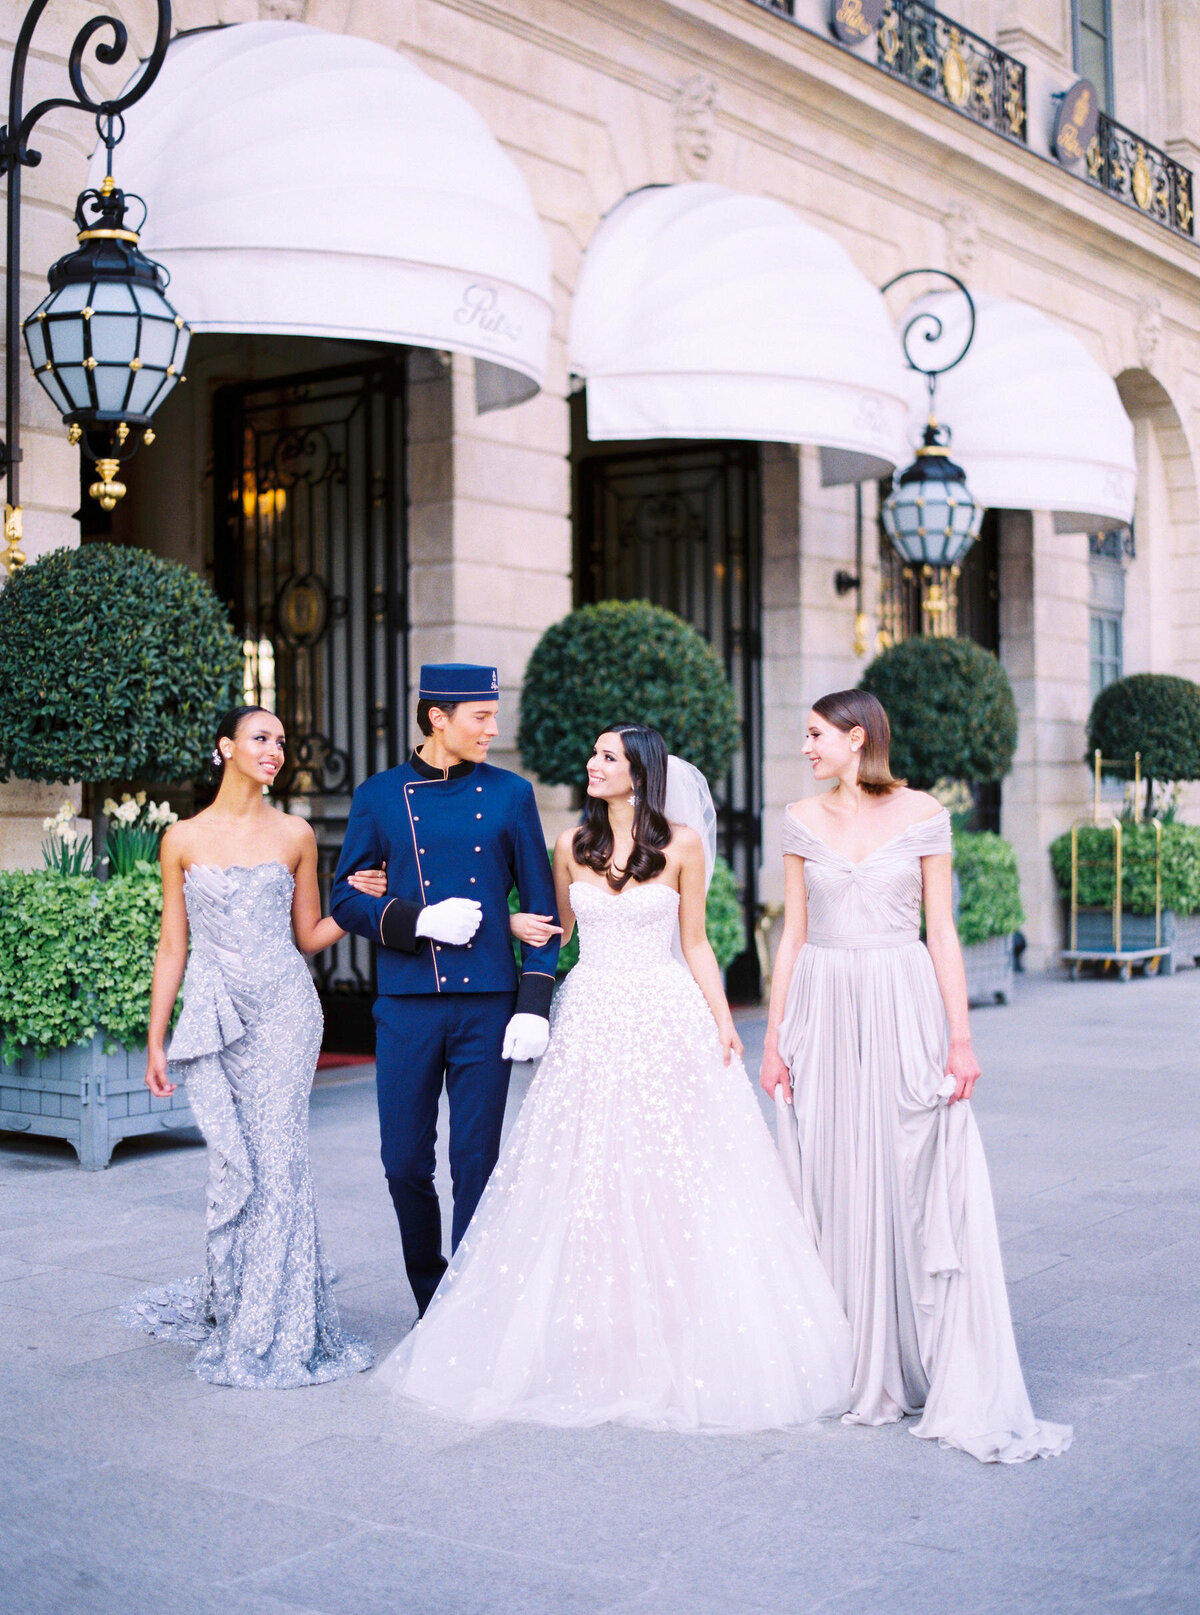 wedding-photographer-in-ritz-paris (23 of 29)